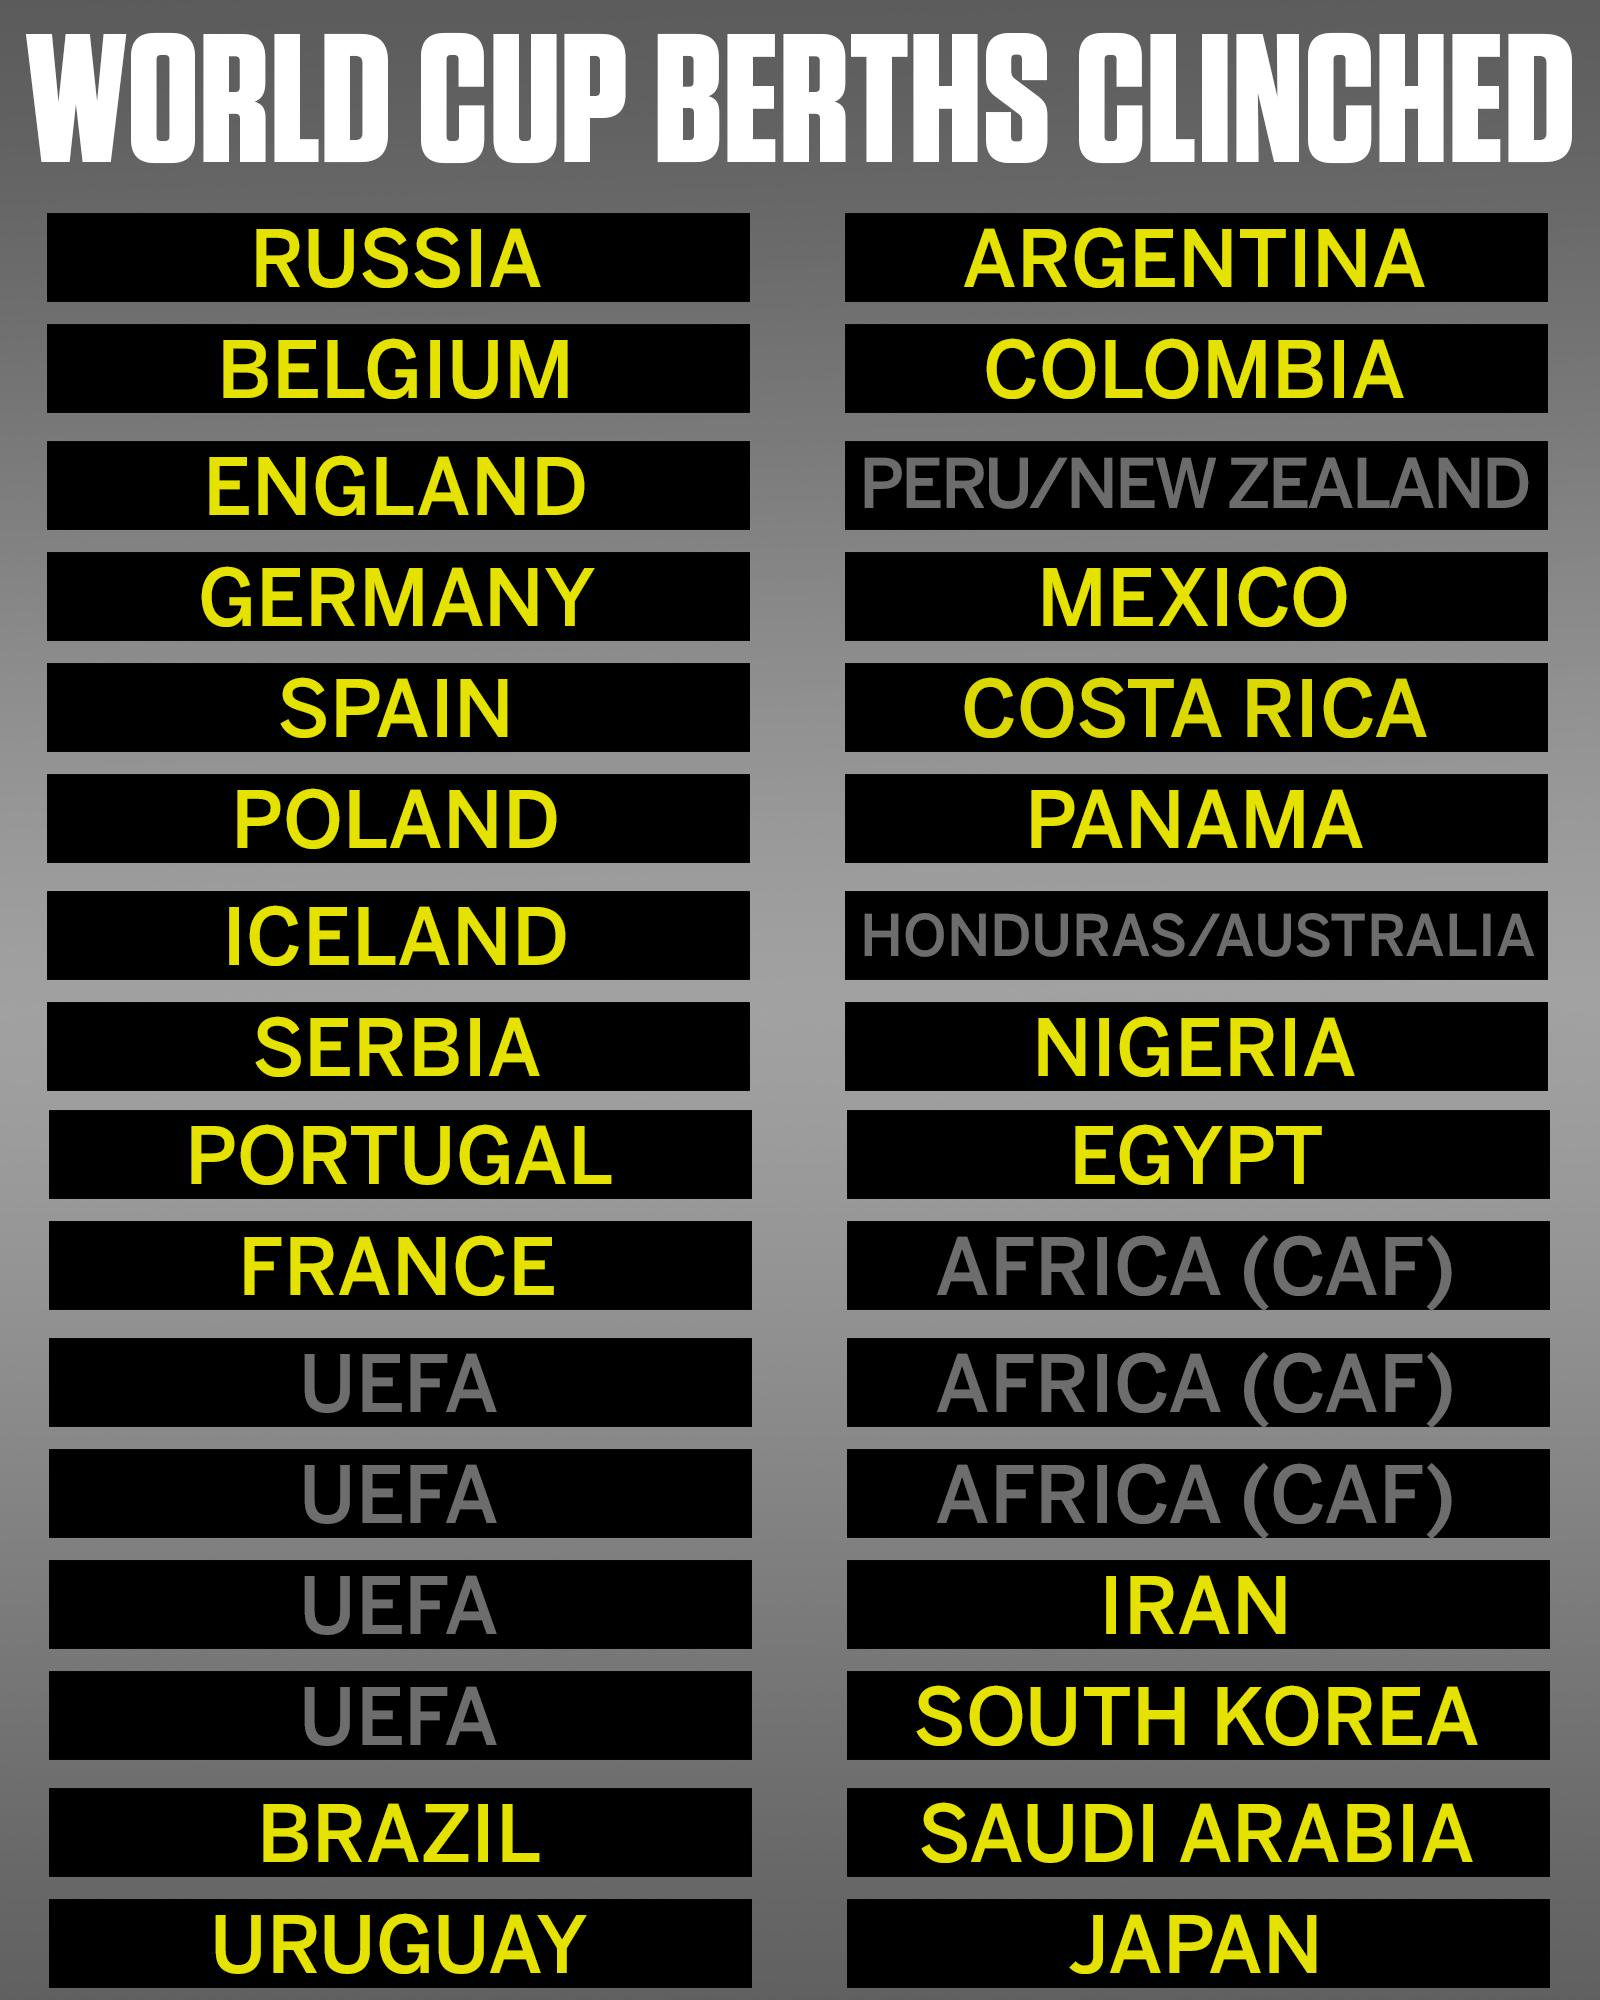 23 World Cup bids clinched.   9 to go.   USA out. https://t.co/rVG0y5VM8J